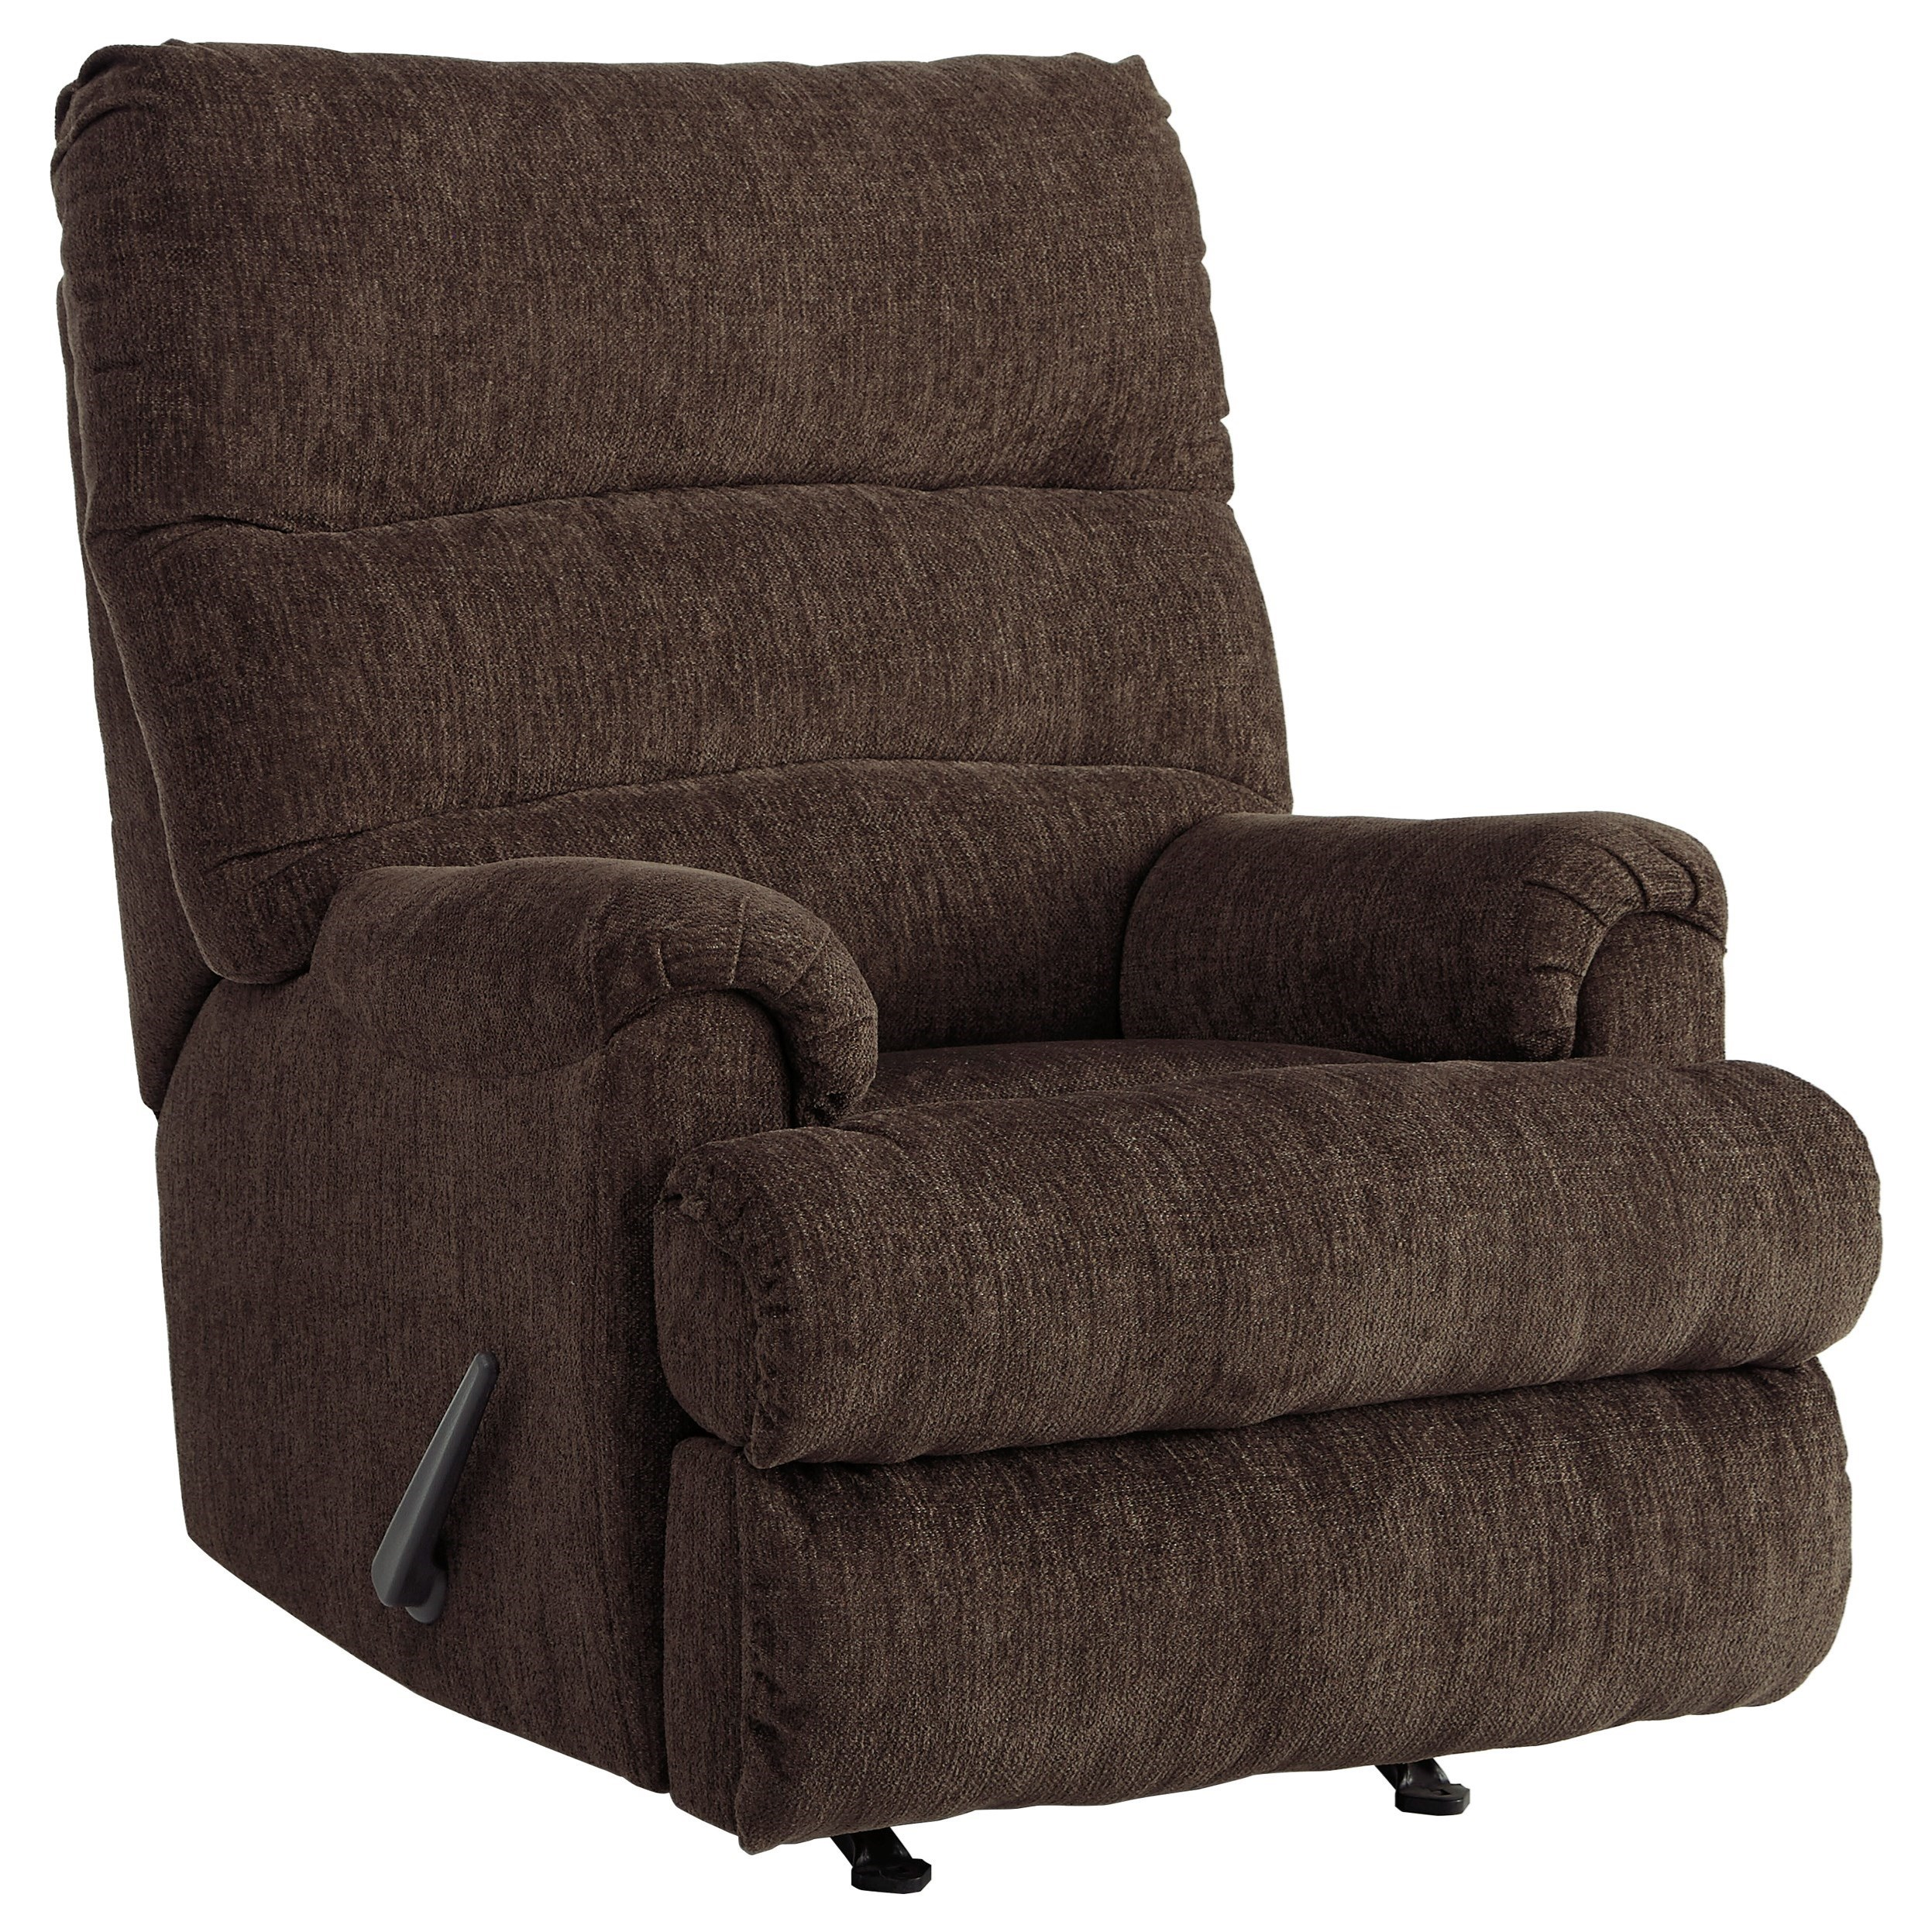 Man Fort Rocker Recliner by Signature Design by Ashley at Northeast Factory Direct